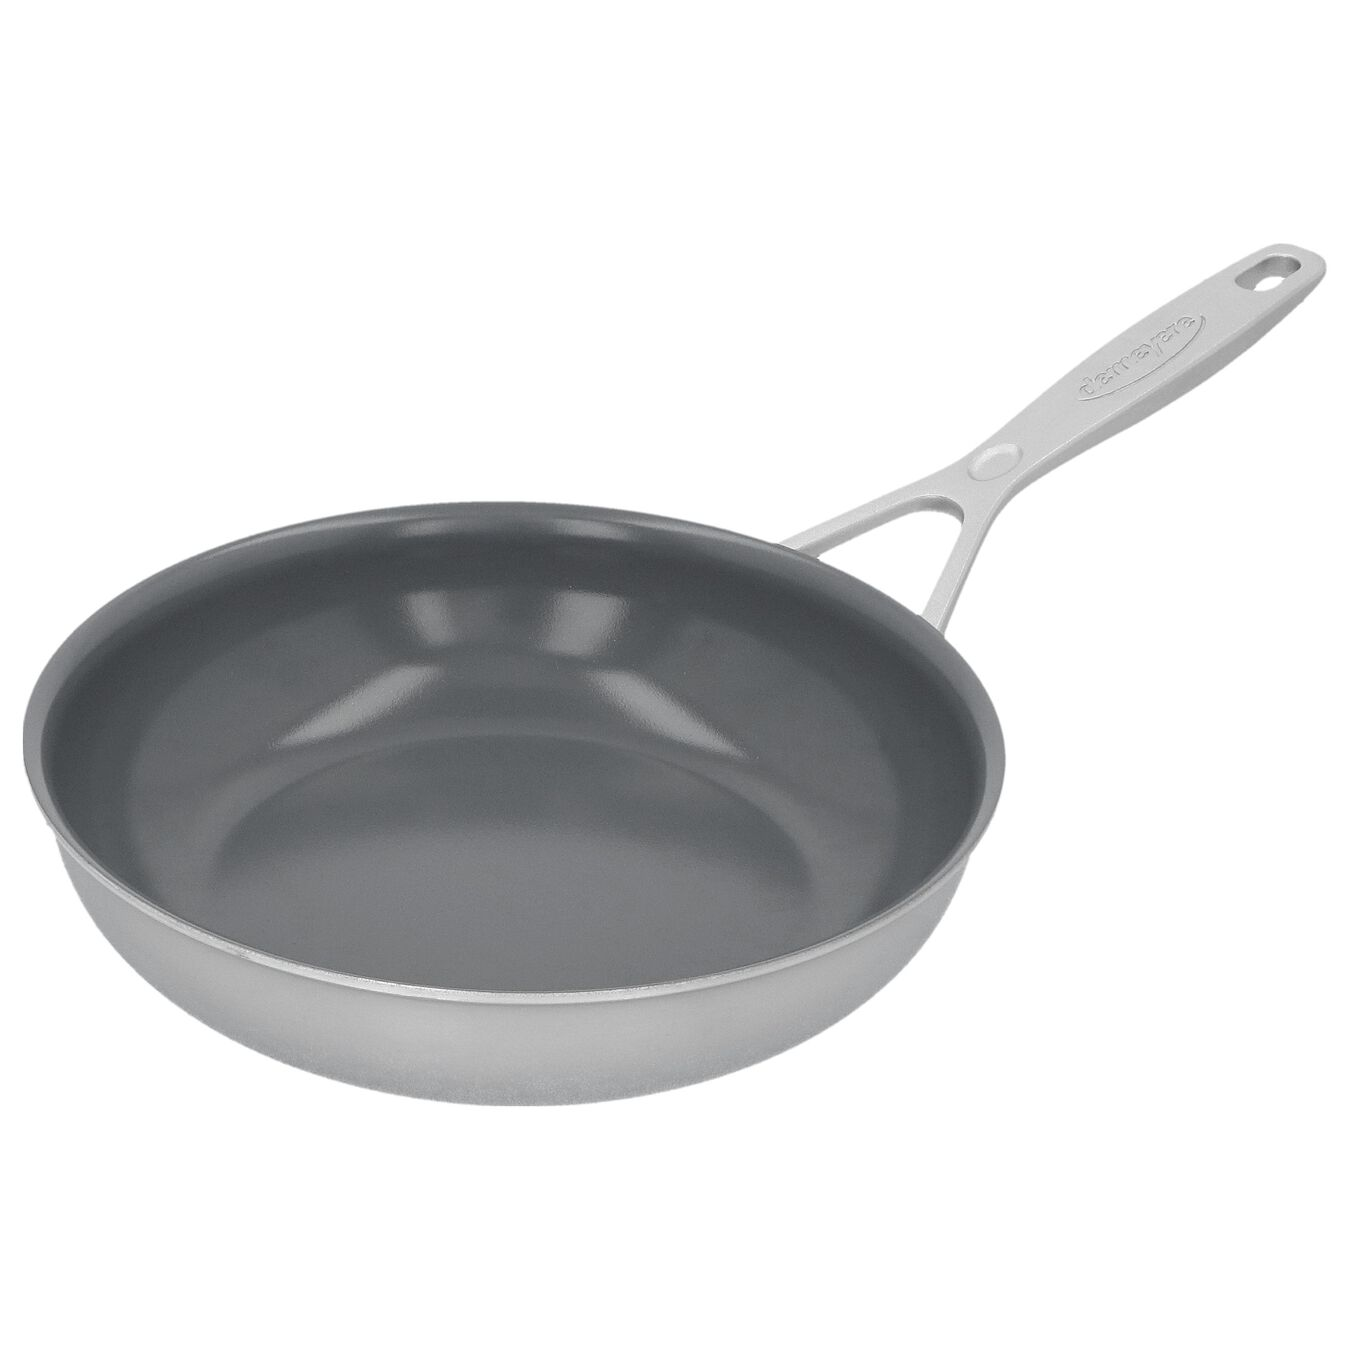 8-inch, 18/10 Stainless Steel, Non-stick, Ceramic, Frying pan,,large 2